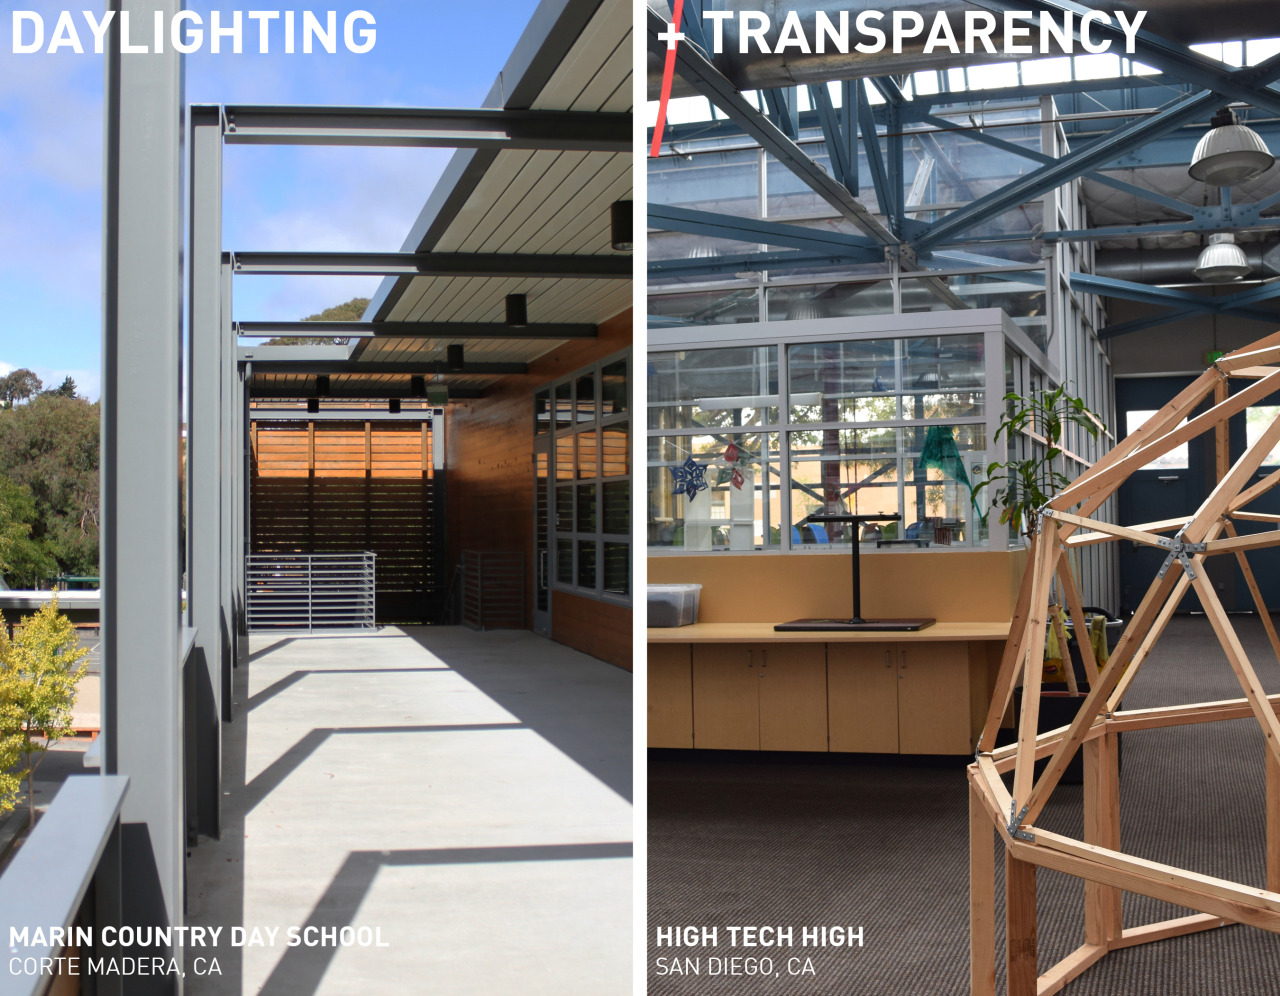 Future of Learning | Daylight + Transparency   Two successful educational environments that were toured for the Future of Learning project were Marin Country Day School and High Tech High. A shared philosophy of both schools was that of transparency, both literal and metaphorical. The term transparency means a level of openness and visibility within the learning environment and between programmatic elements and the outdoors, as well as, the infiltration of daylight. Transparency allows for the exchange of not only views from inside to outside, but also information and ideas.     …to visit full article